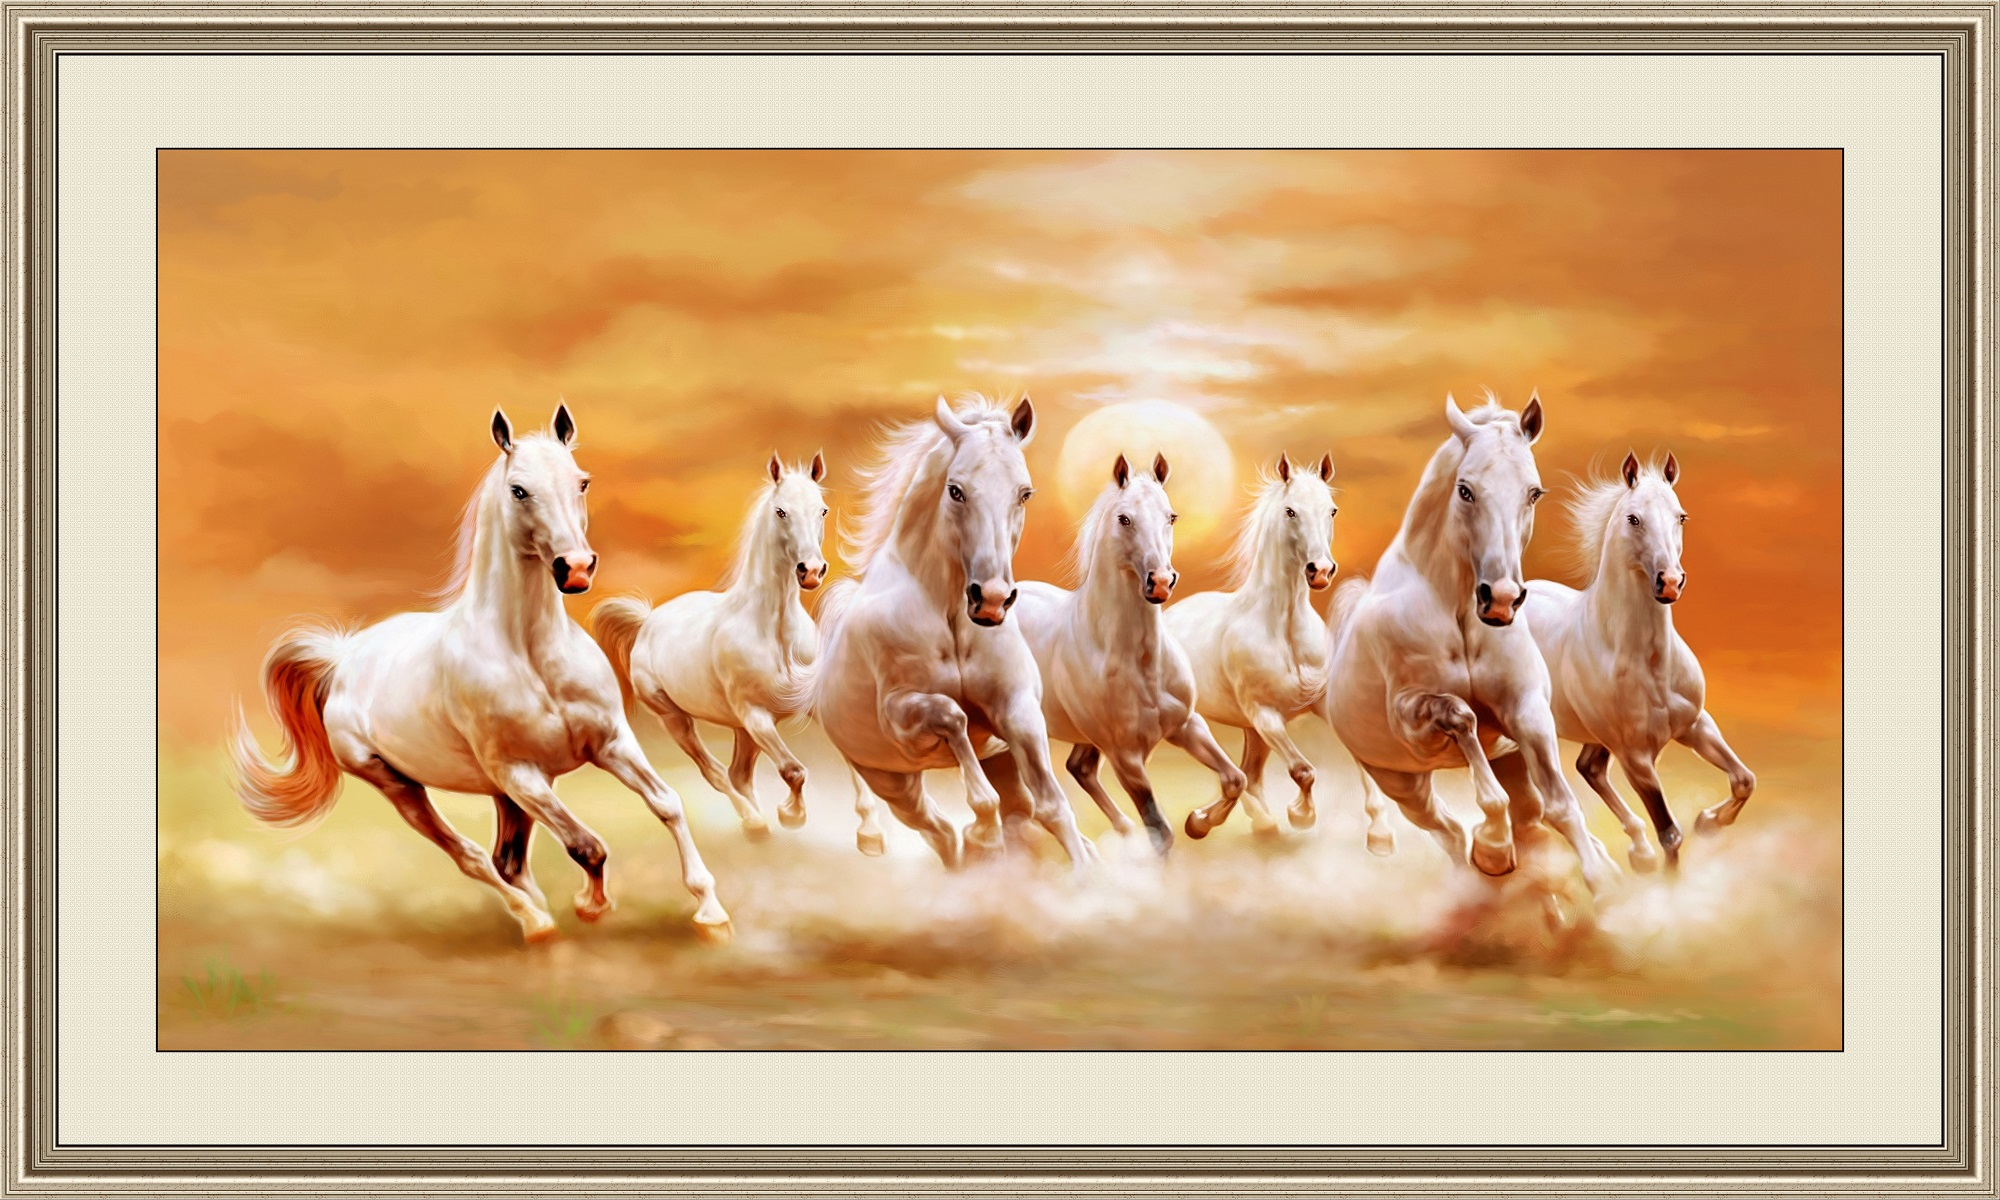 Horse Decor For The Home Vastu Seven Horses Painting Right Direction With Frame On